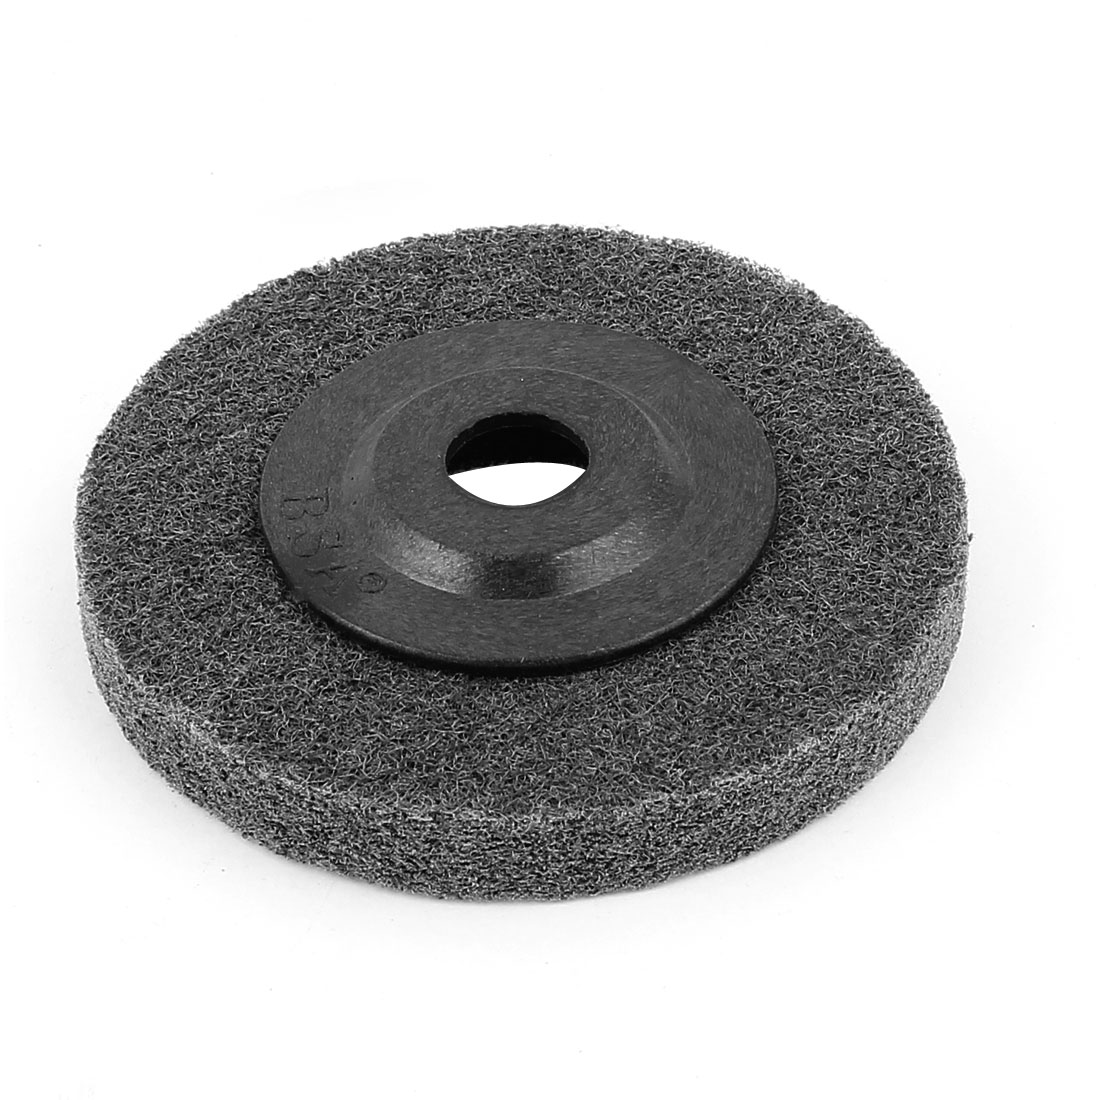 100mm x 16mm x 13mm Cutting Grinding Disc Abrasive Grinding Wheel Gray